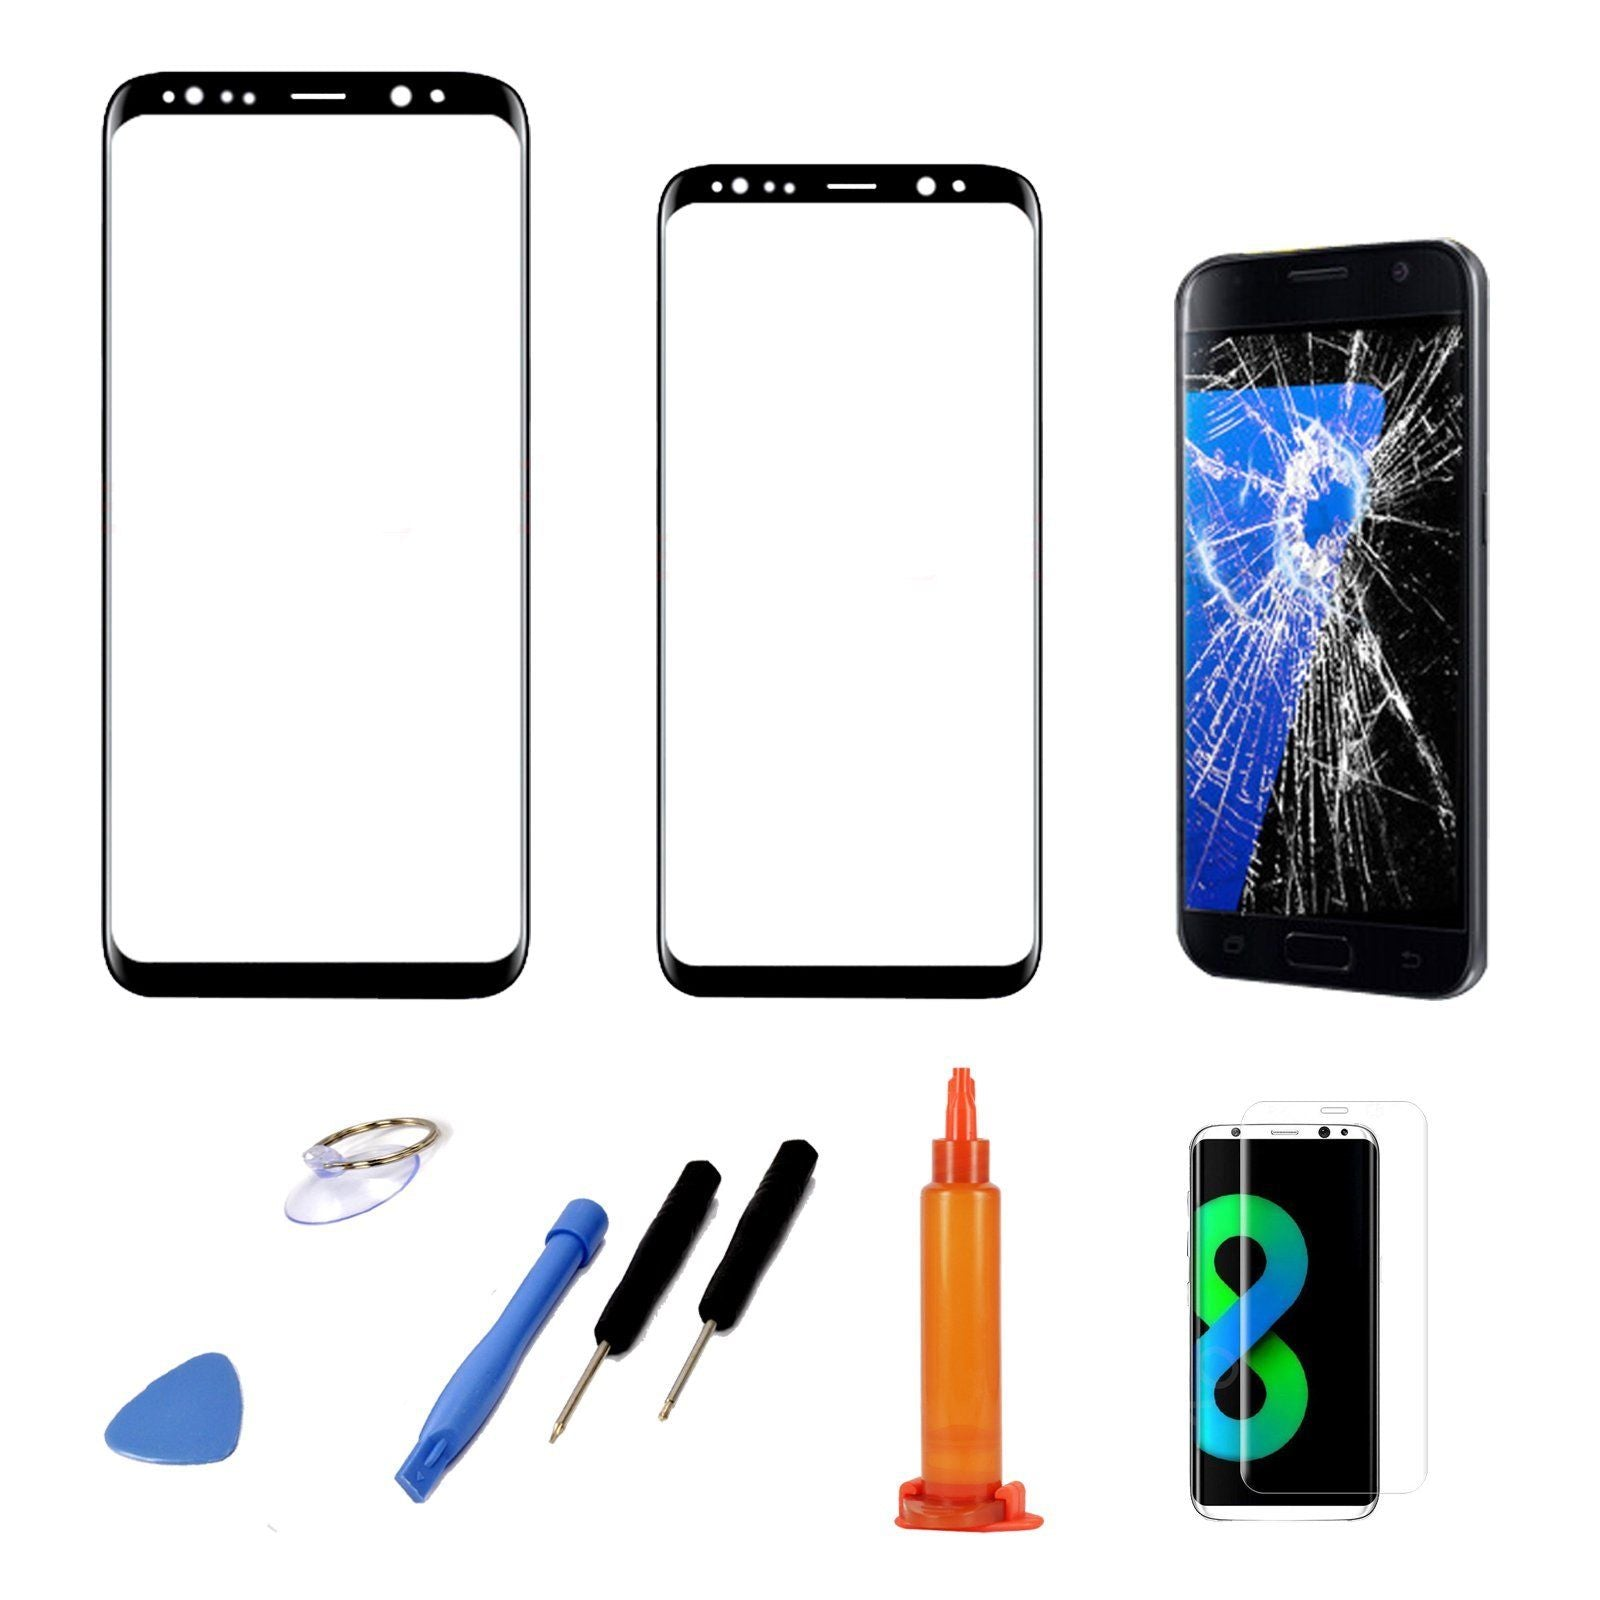 Galaxy s8 touch screen not working at all